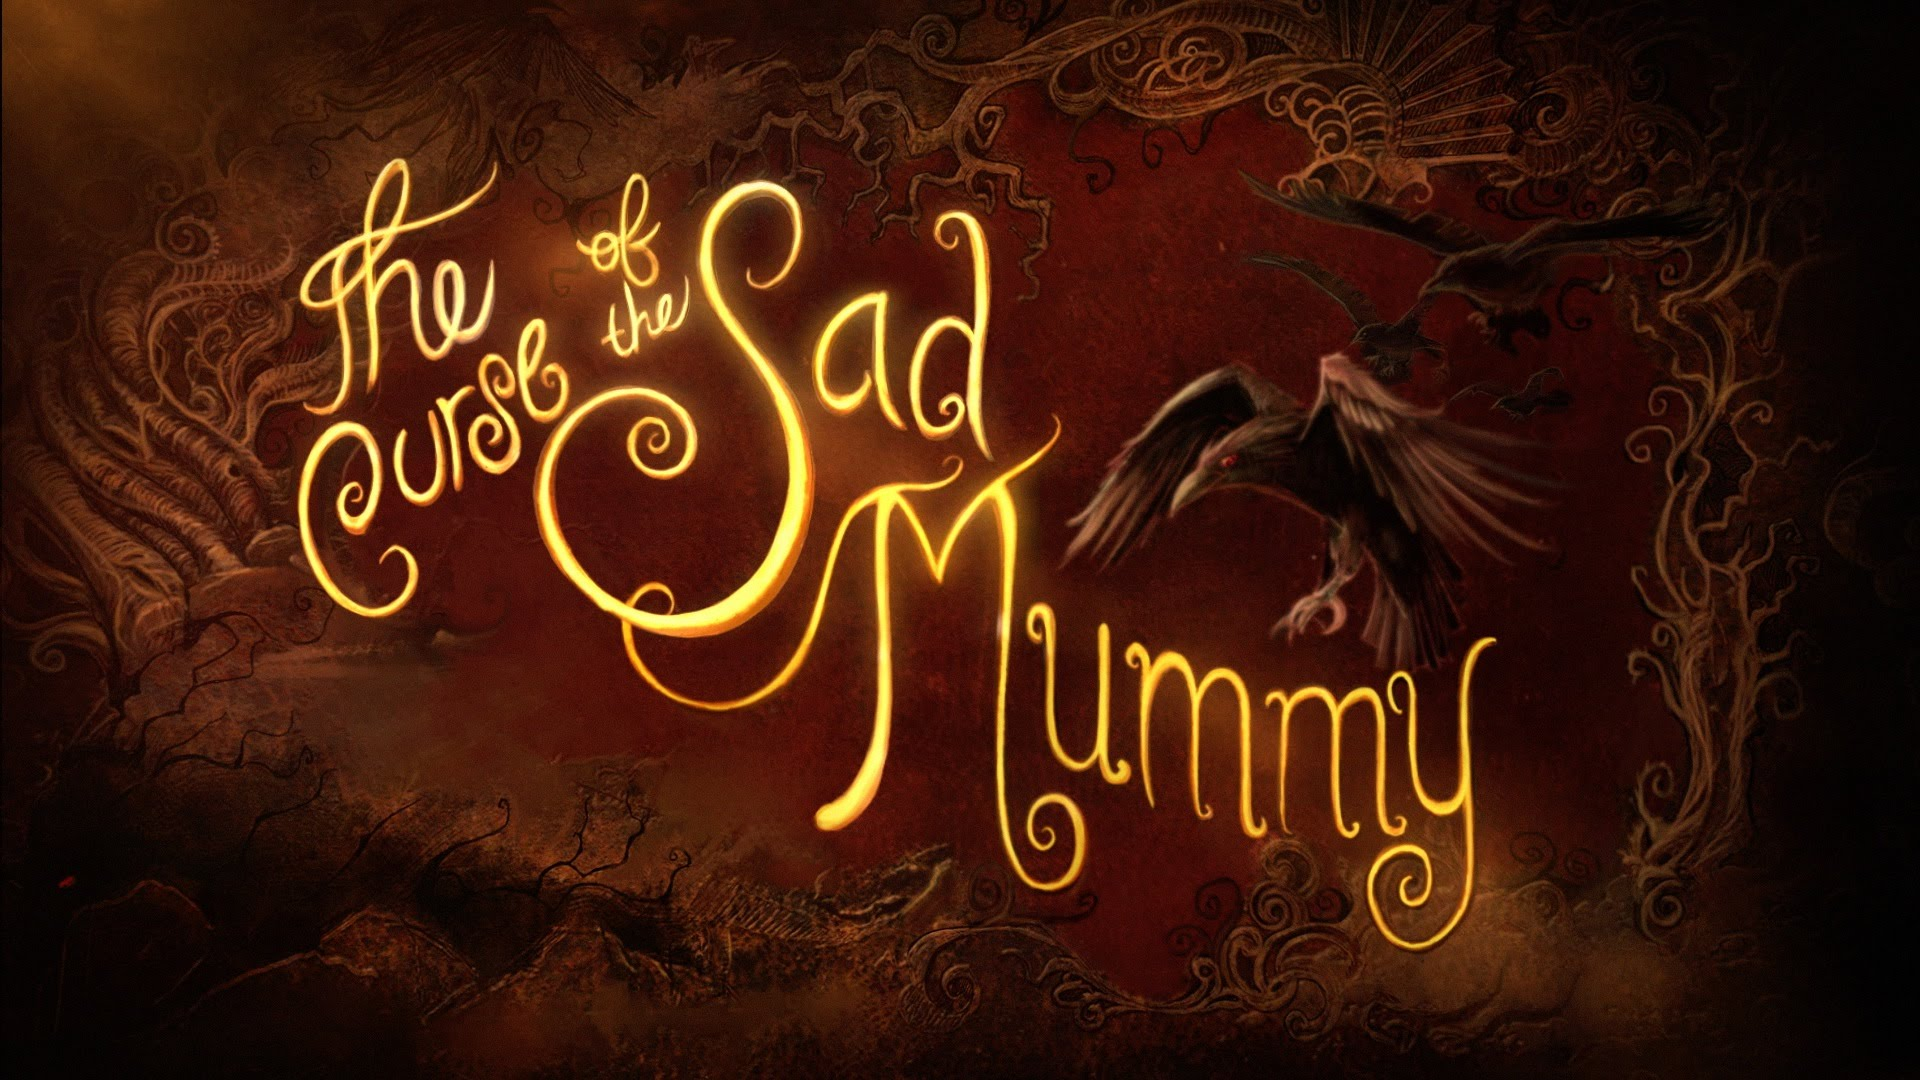 Amumu The Curse of the Sad Mummy